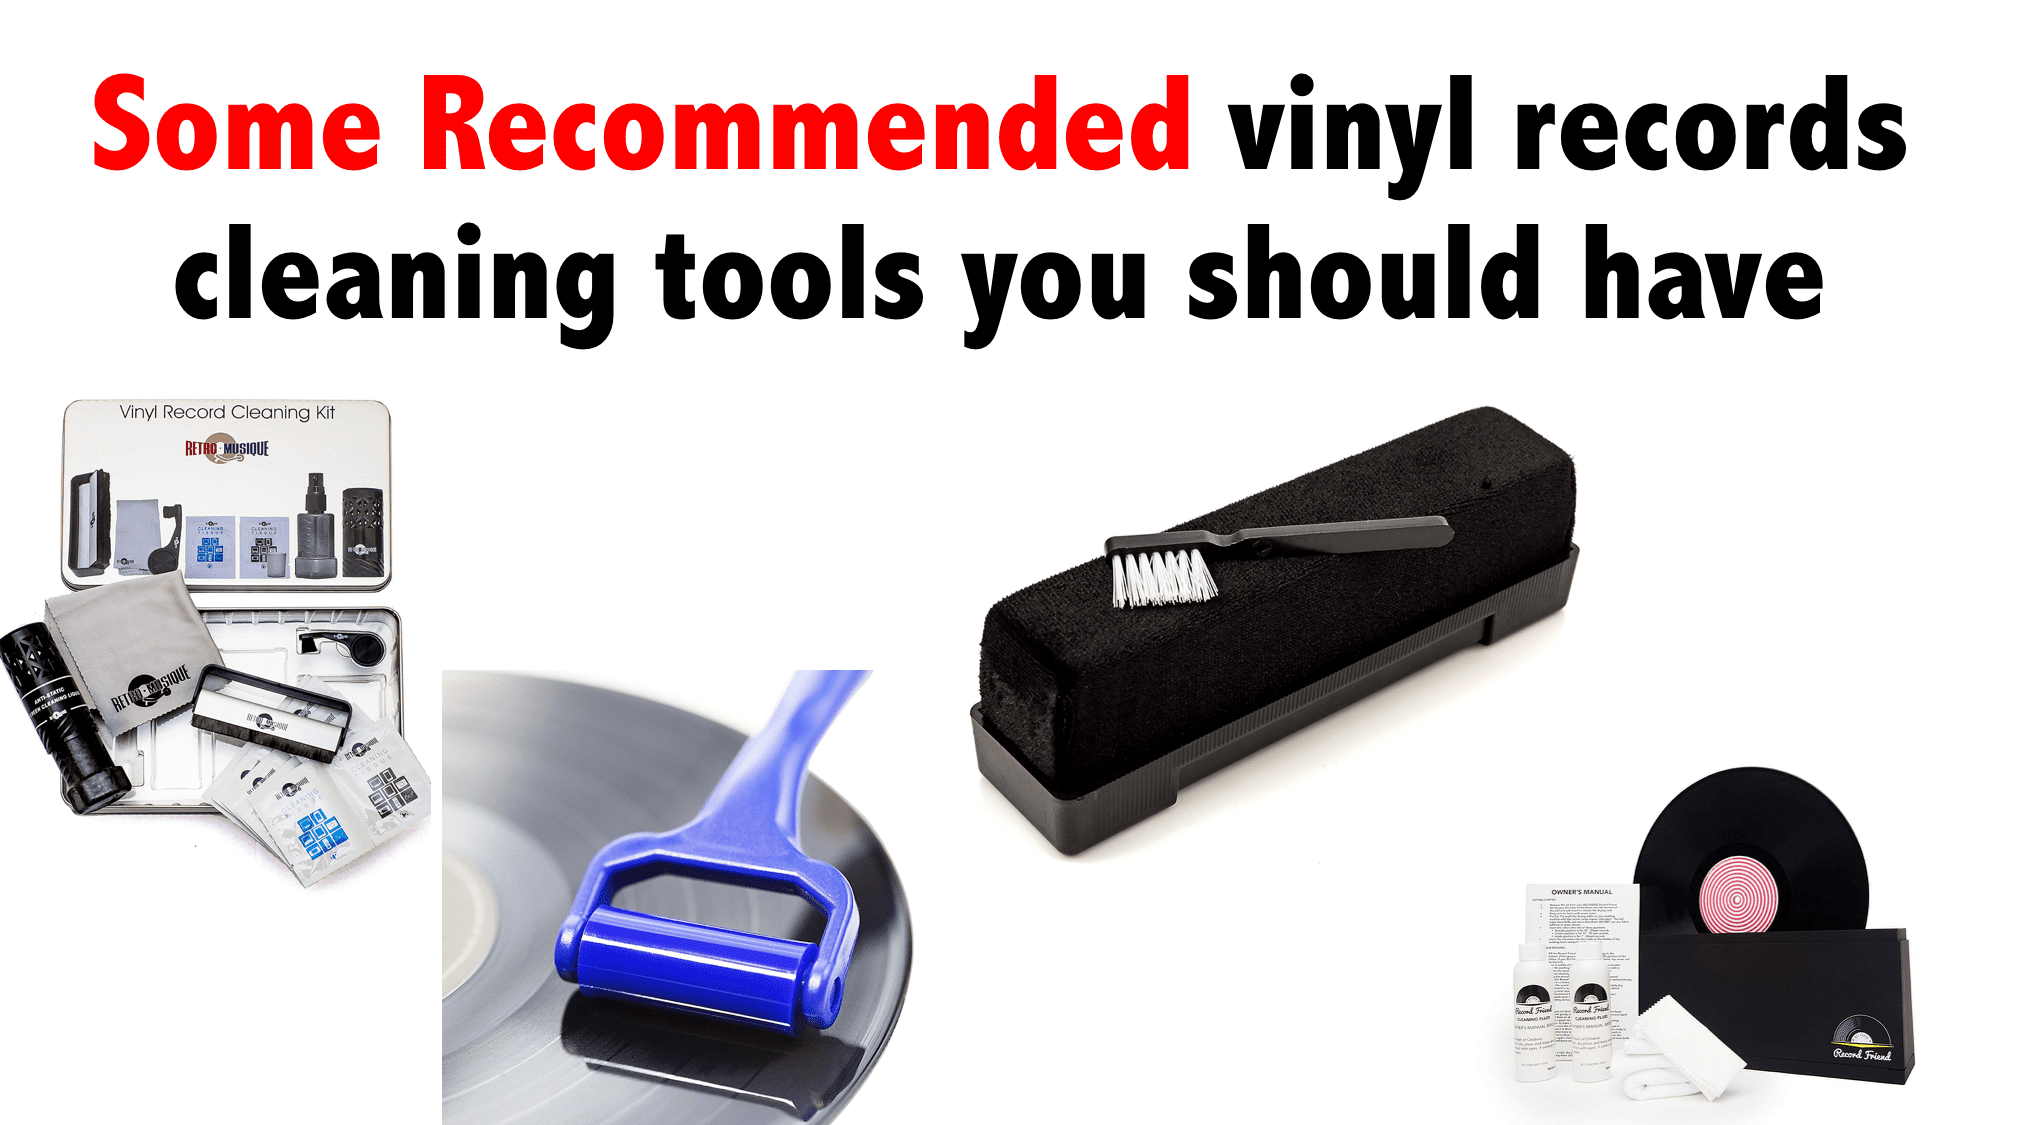 Some Recommended vinyl records cleaning tools you should have